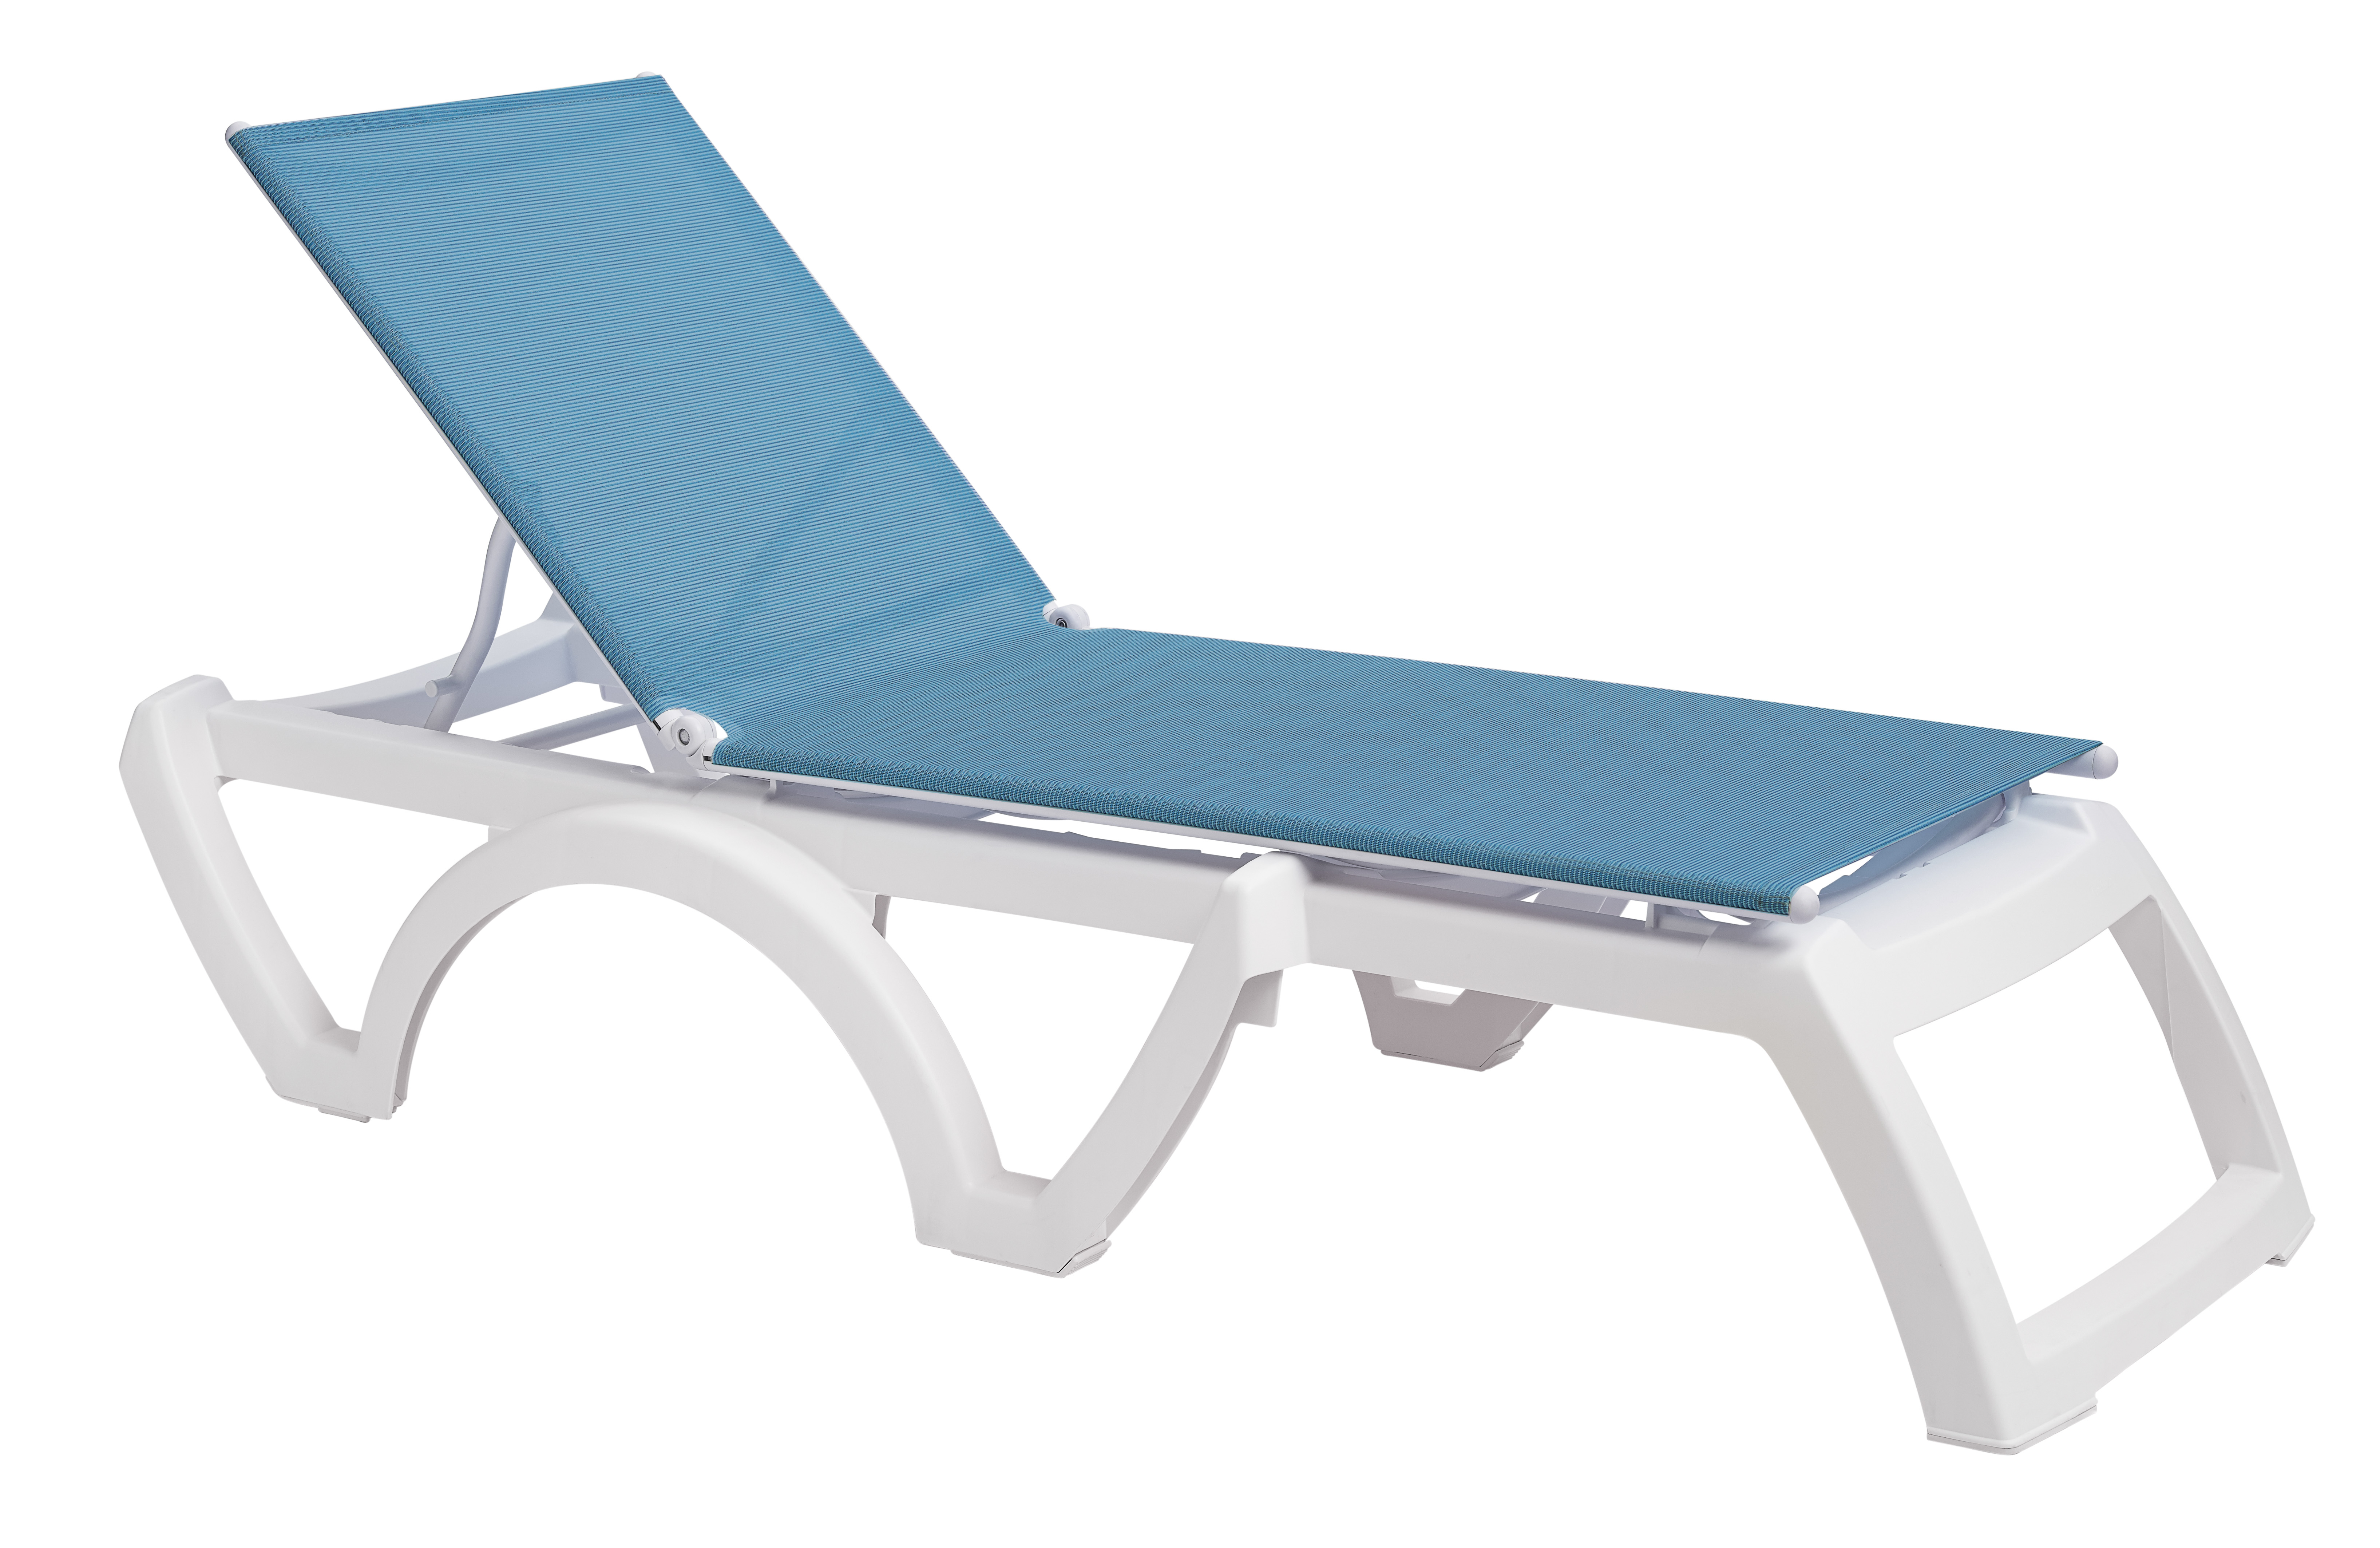 Grosfillex calypso resin adjustable sling chaise lounge et t distributors - Grosfillex chaise longue ...